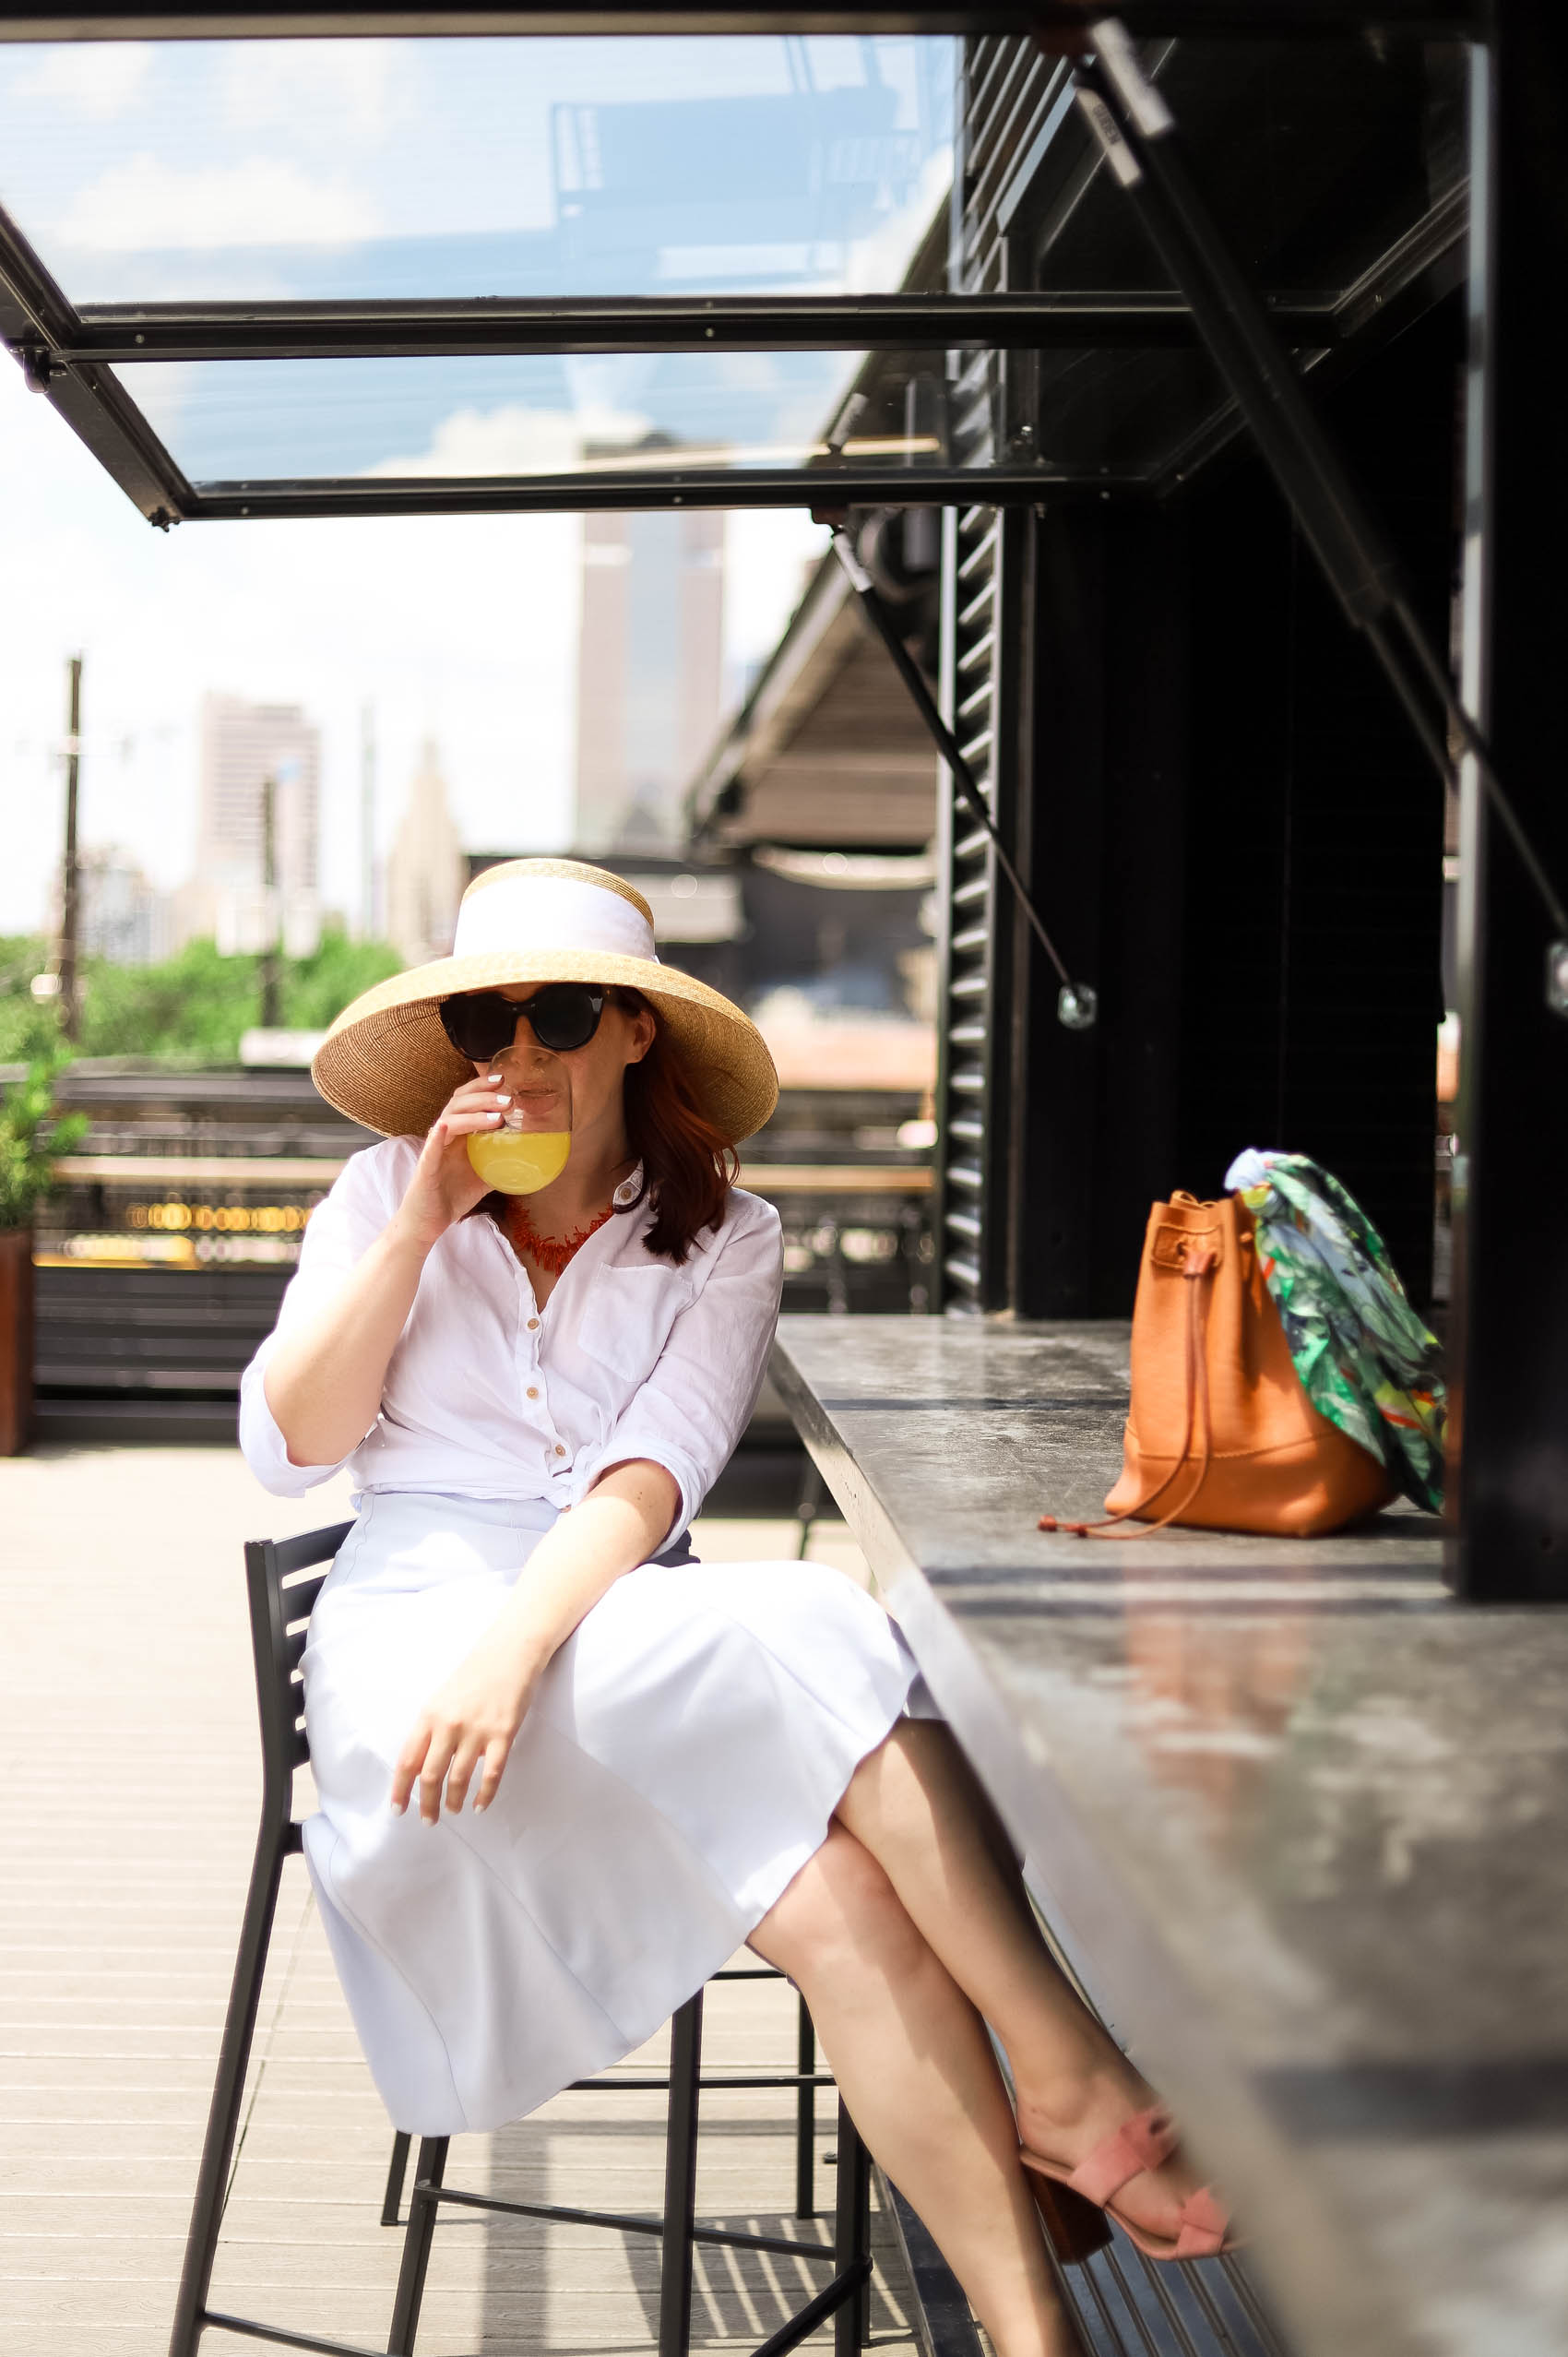 Wearing linen blouse and blue shirt, sharing story about fixing relationships while drinking mimosa on a patio